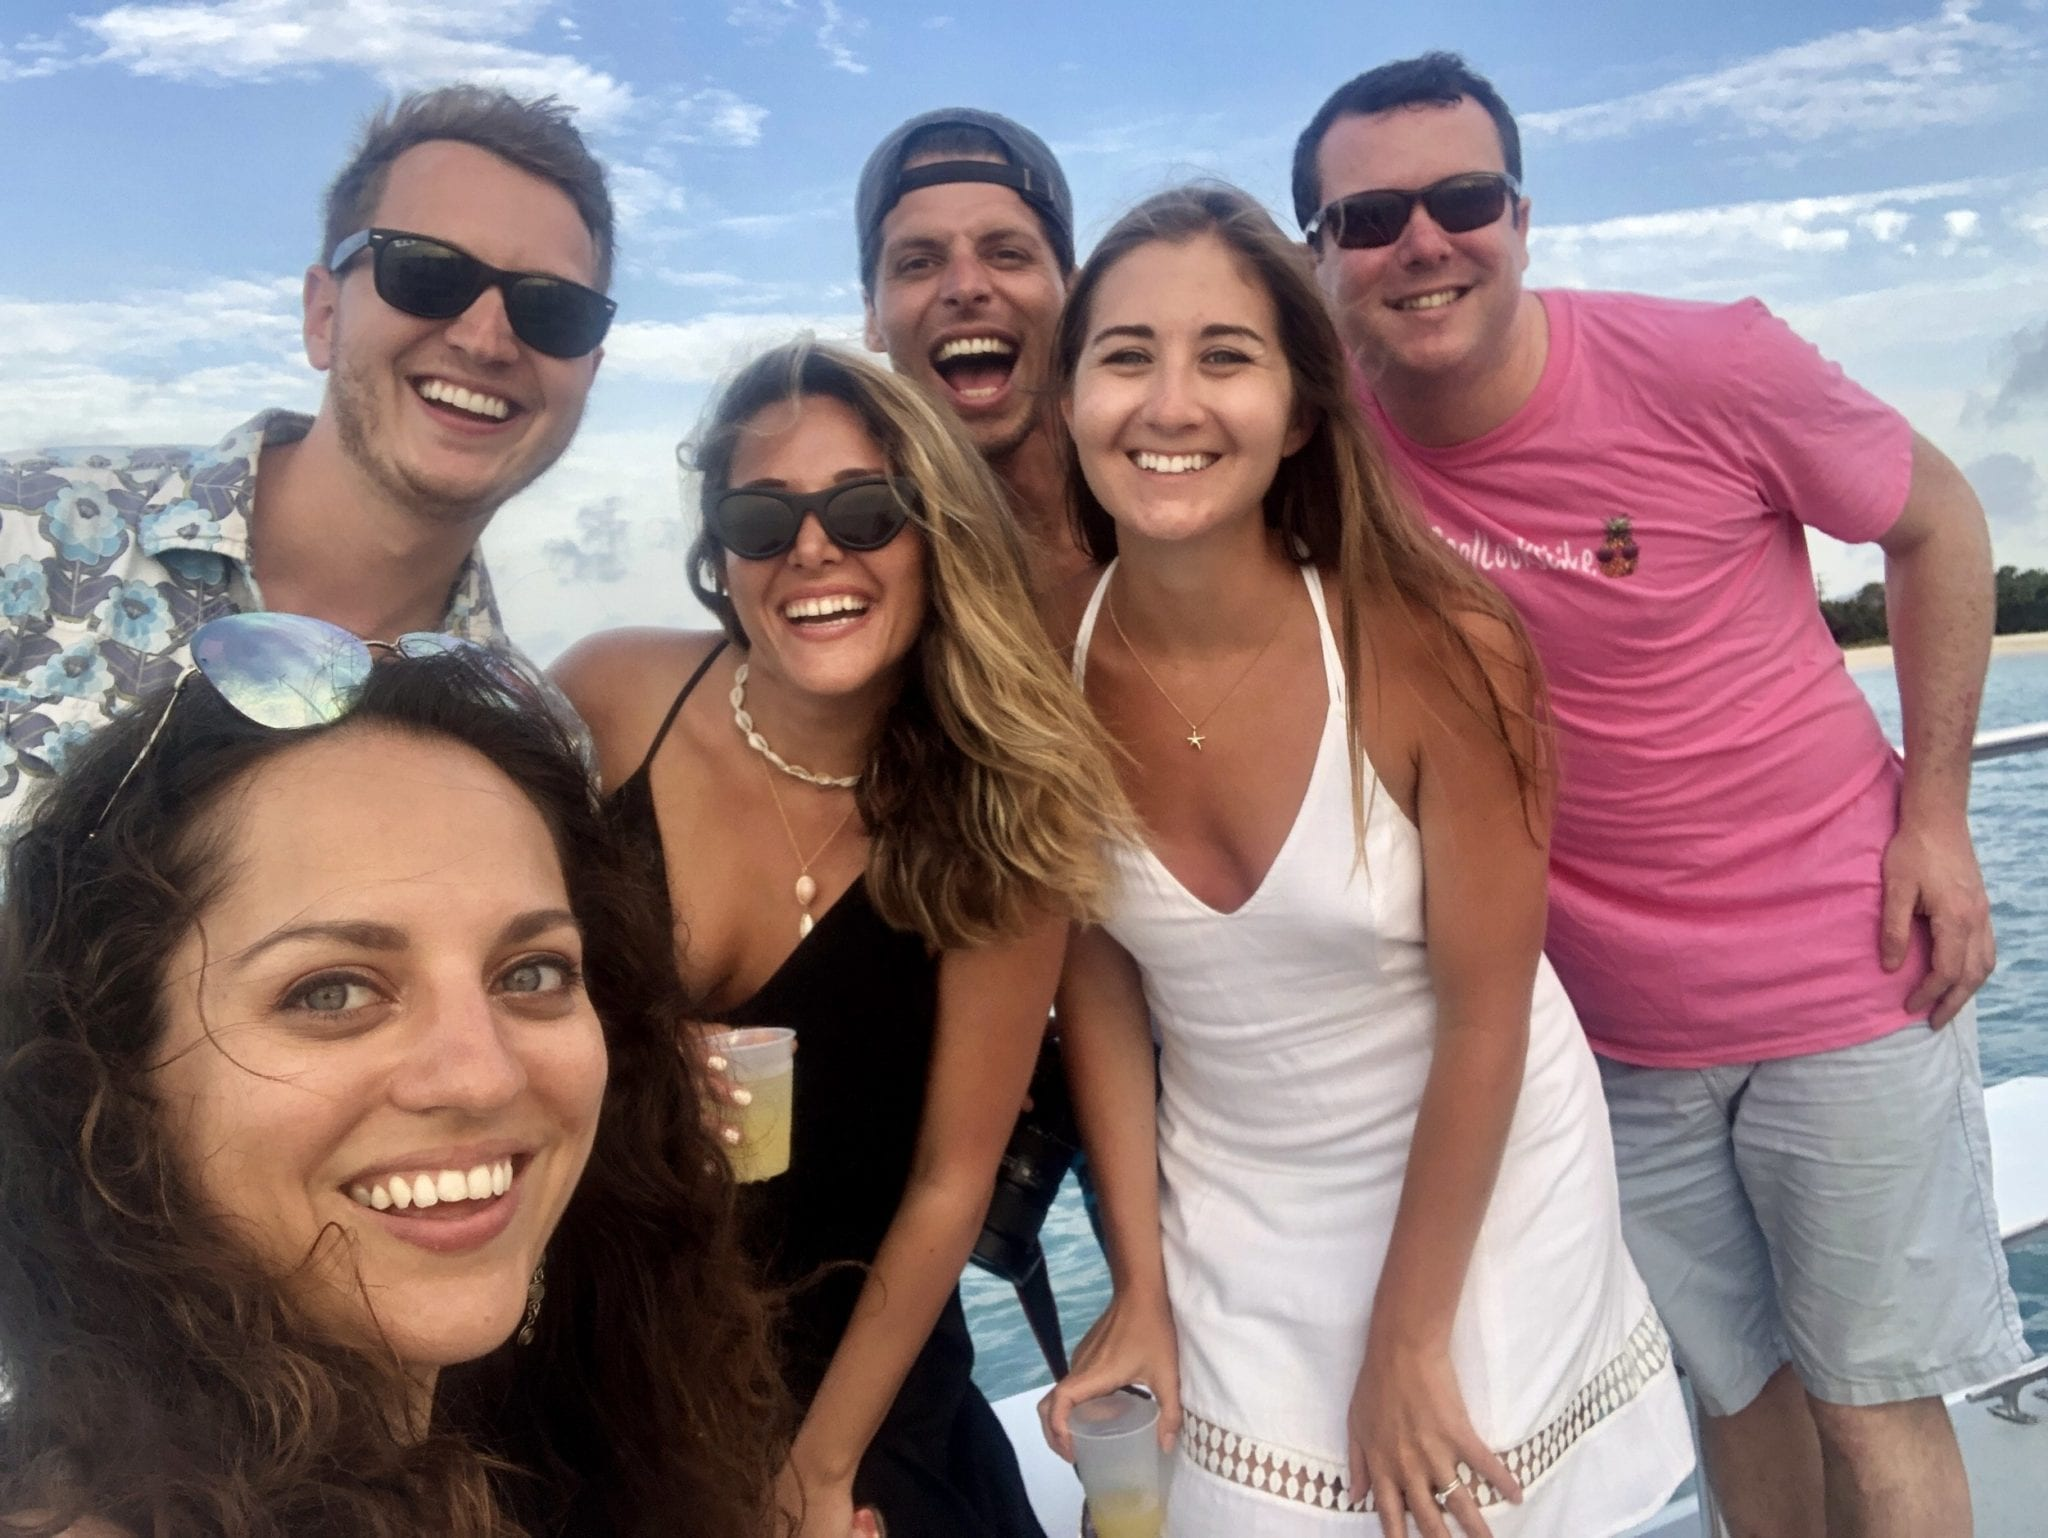 Kate and a group of several friends posing and smiling on a catamaran in Antigua